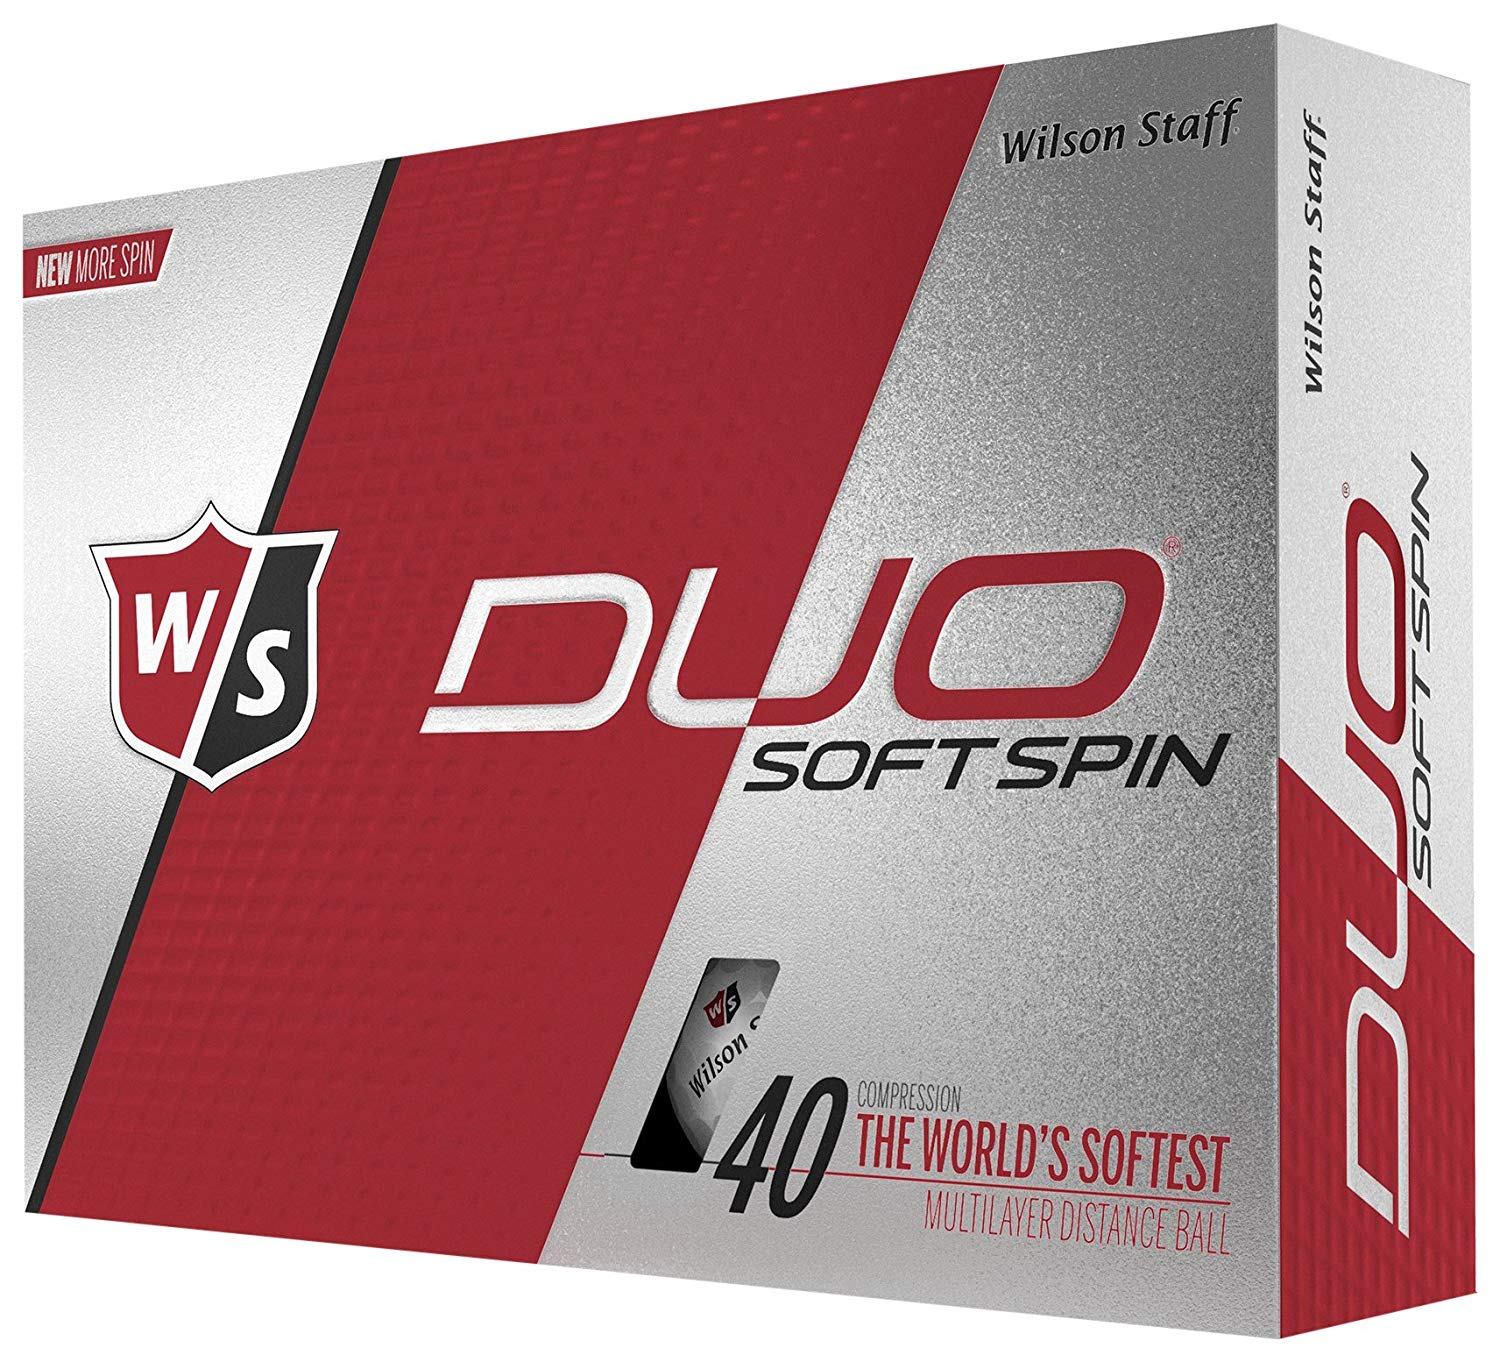 Wilson Staff Duo Soft - cheap golf balls for spin